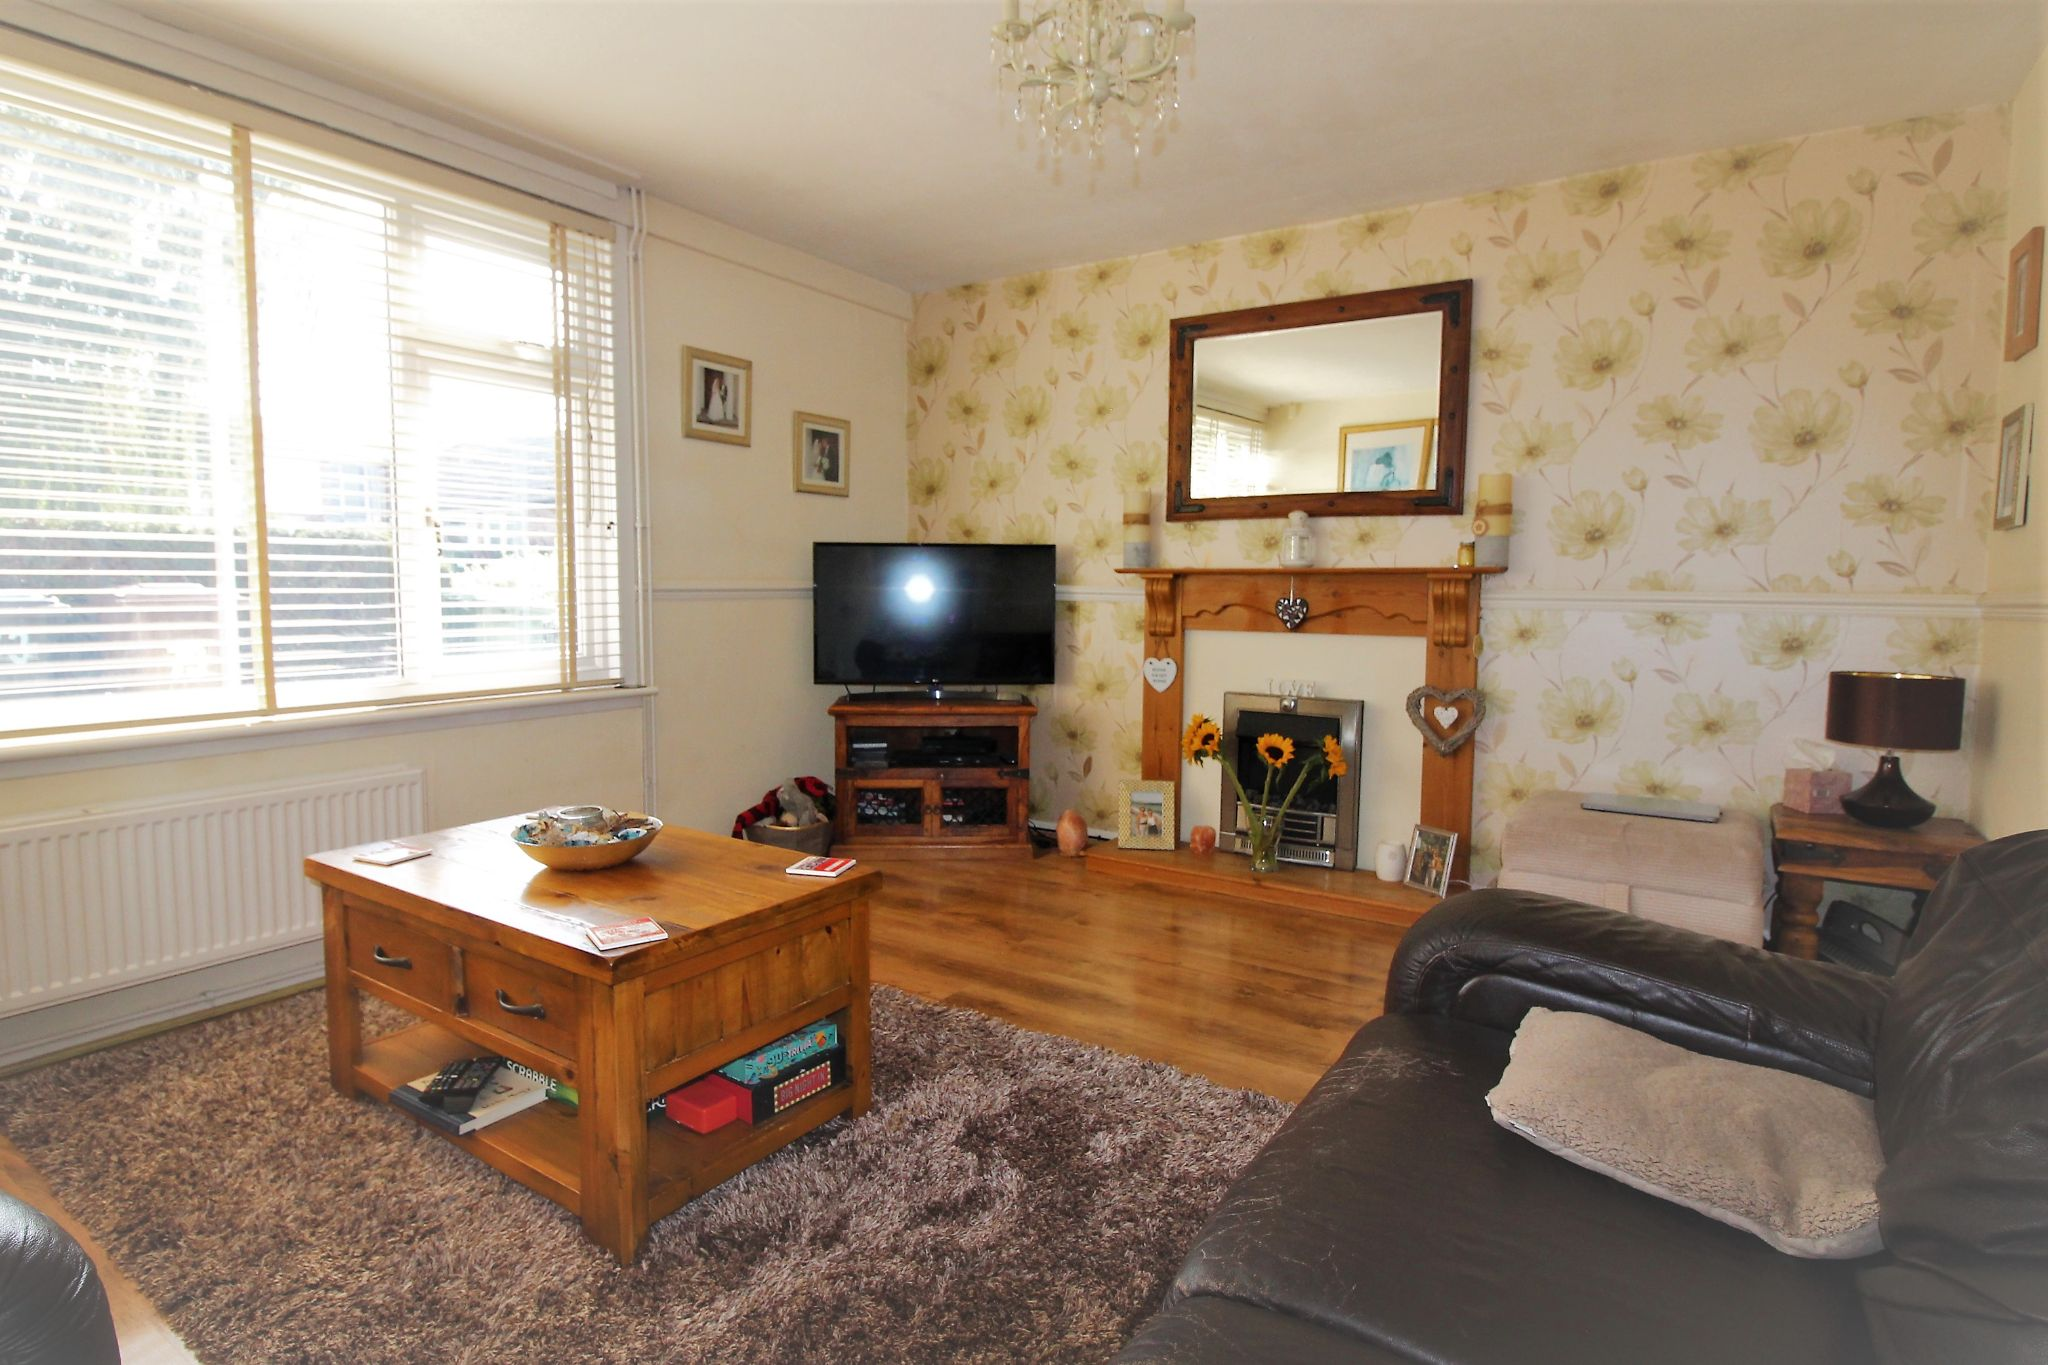 3 bedroom mid terraced house For Sale in Solihull - Photograph 3.